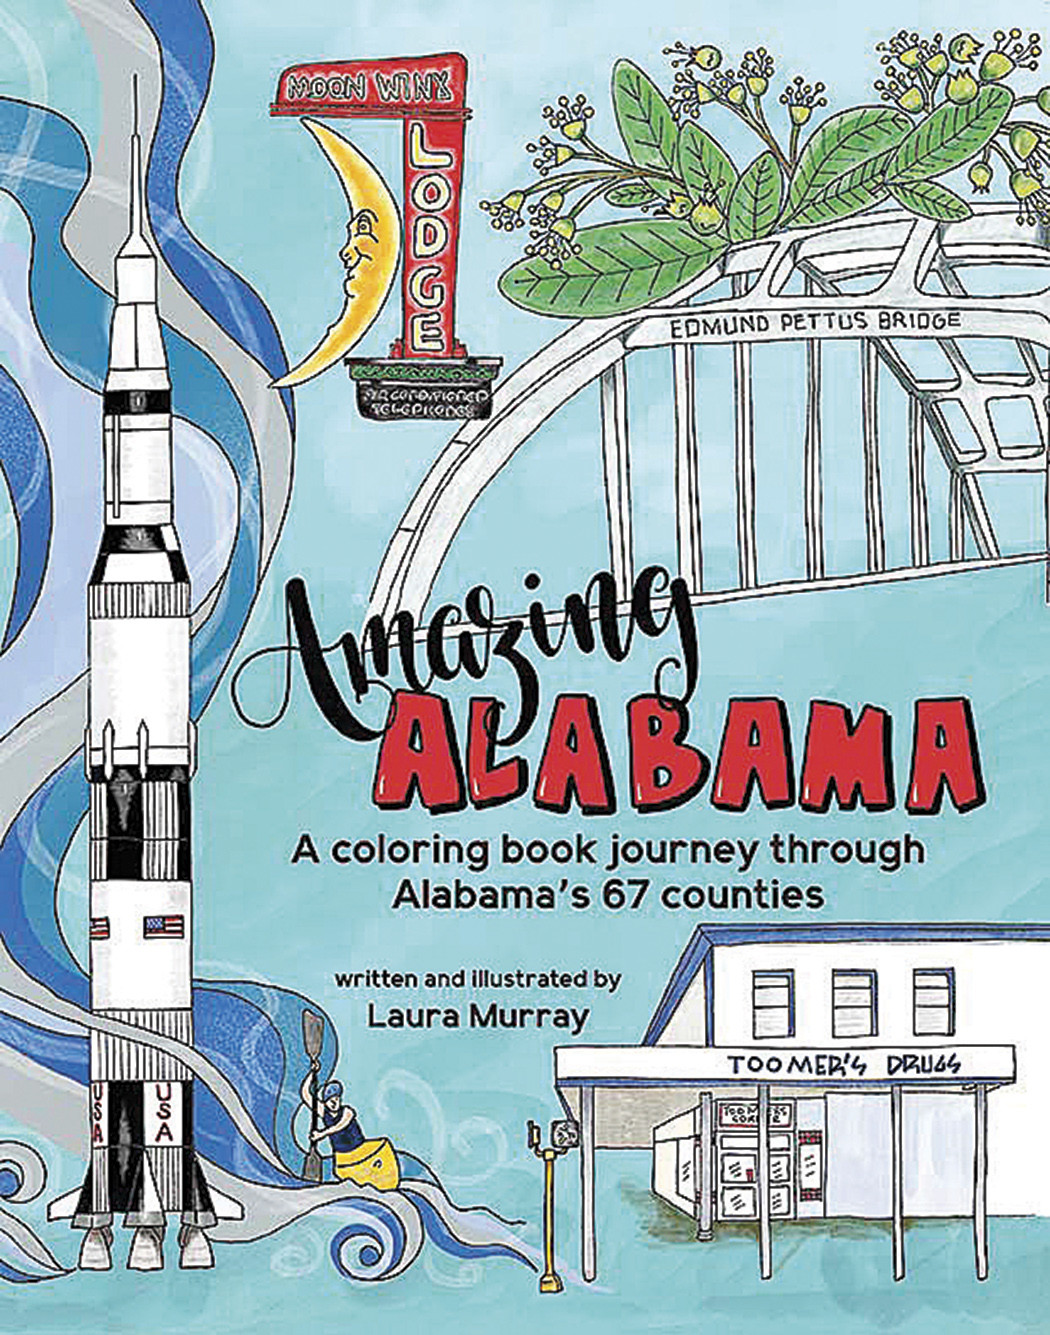 New coloring book spotlights all 67 Alabama counties